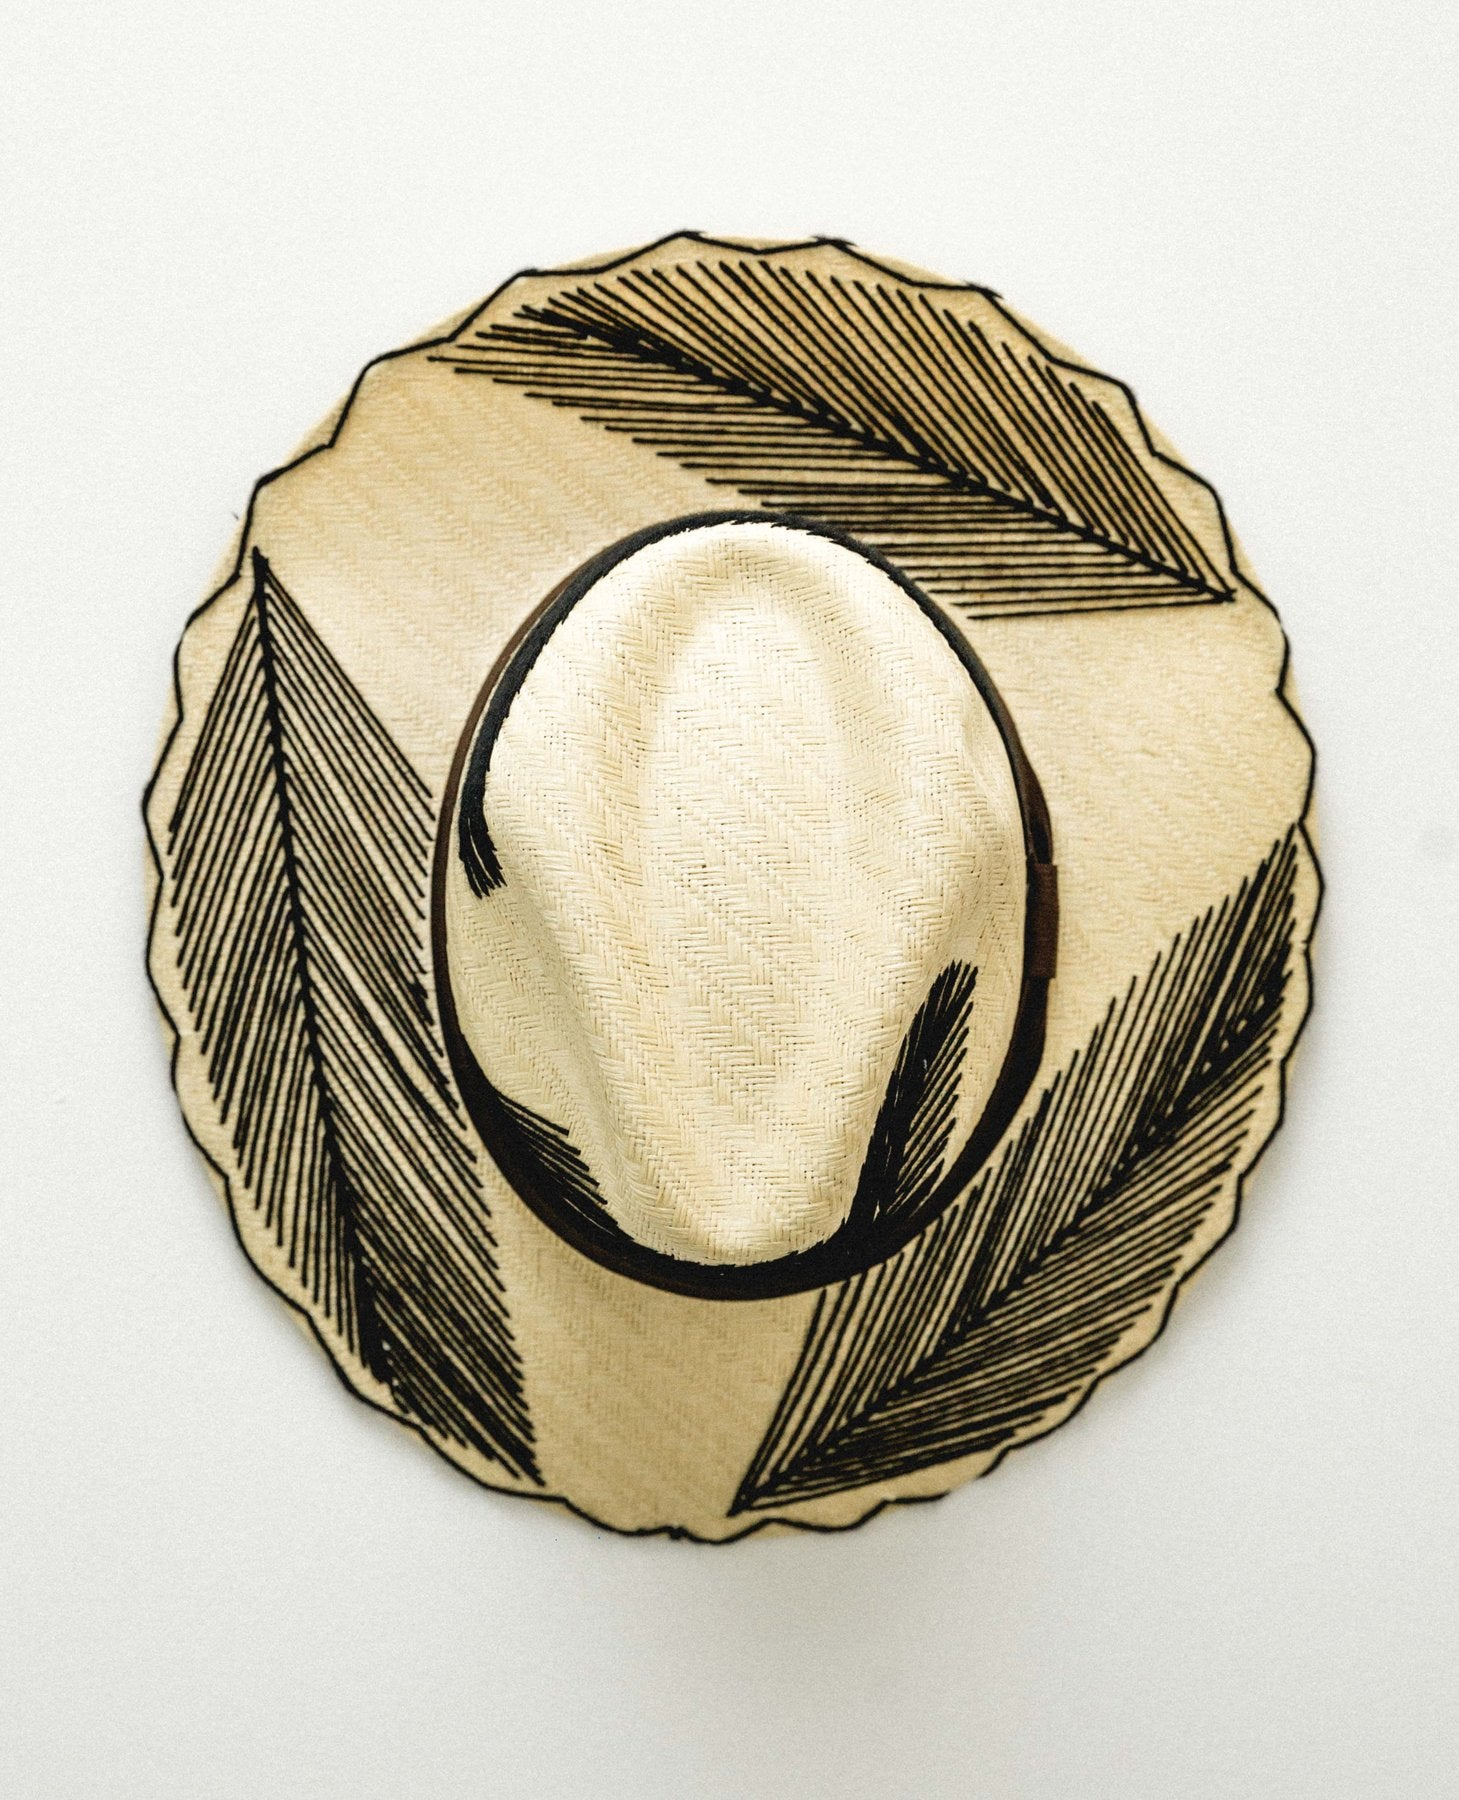 Summer Romero Hand Embroidered Straw Hat